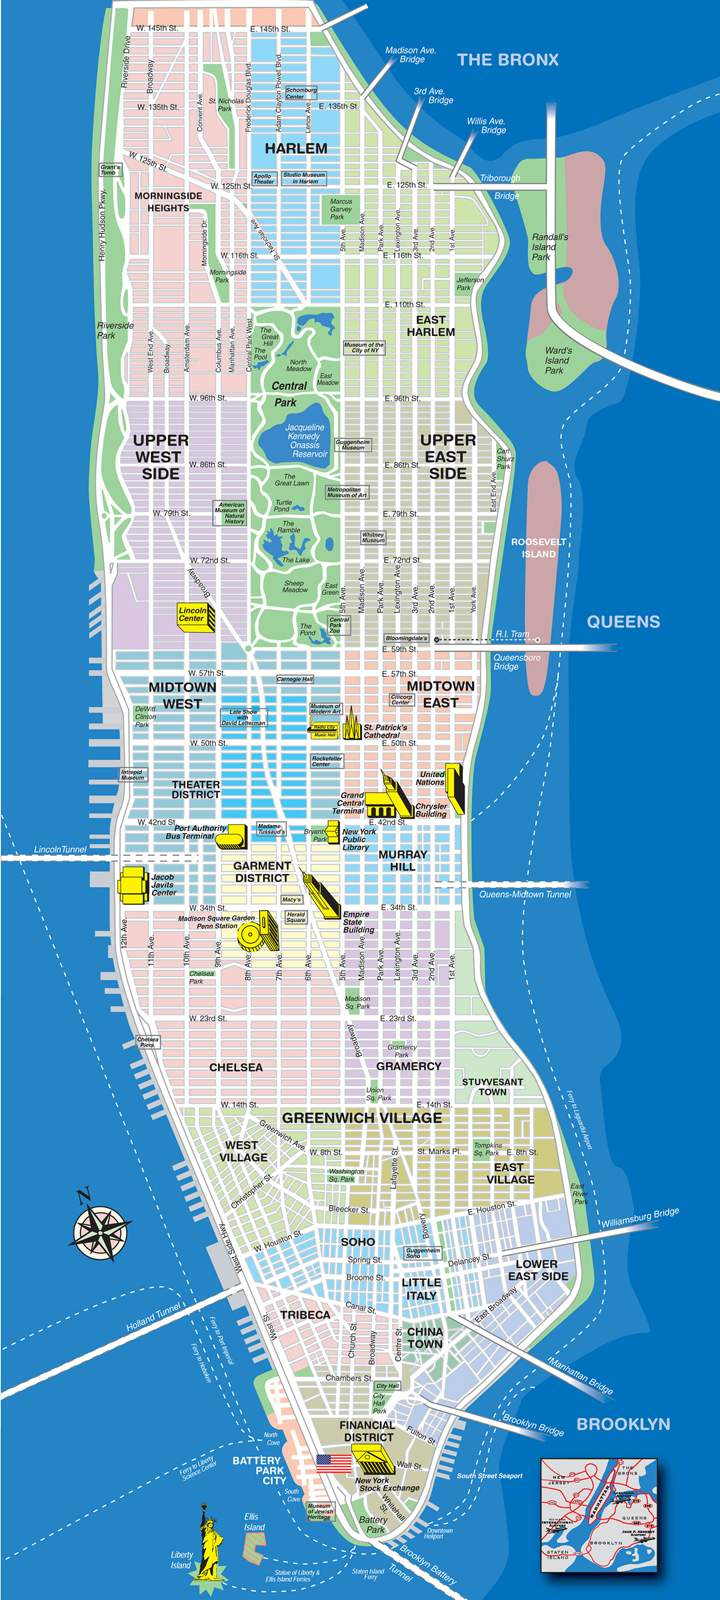 Large Manhattan Maps For Free Download And Print   High-Resolution - Printable New York Street Map